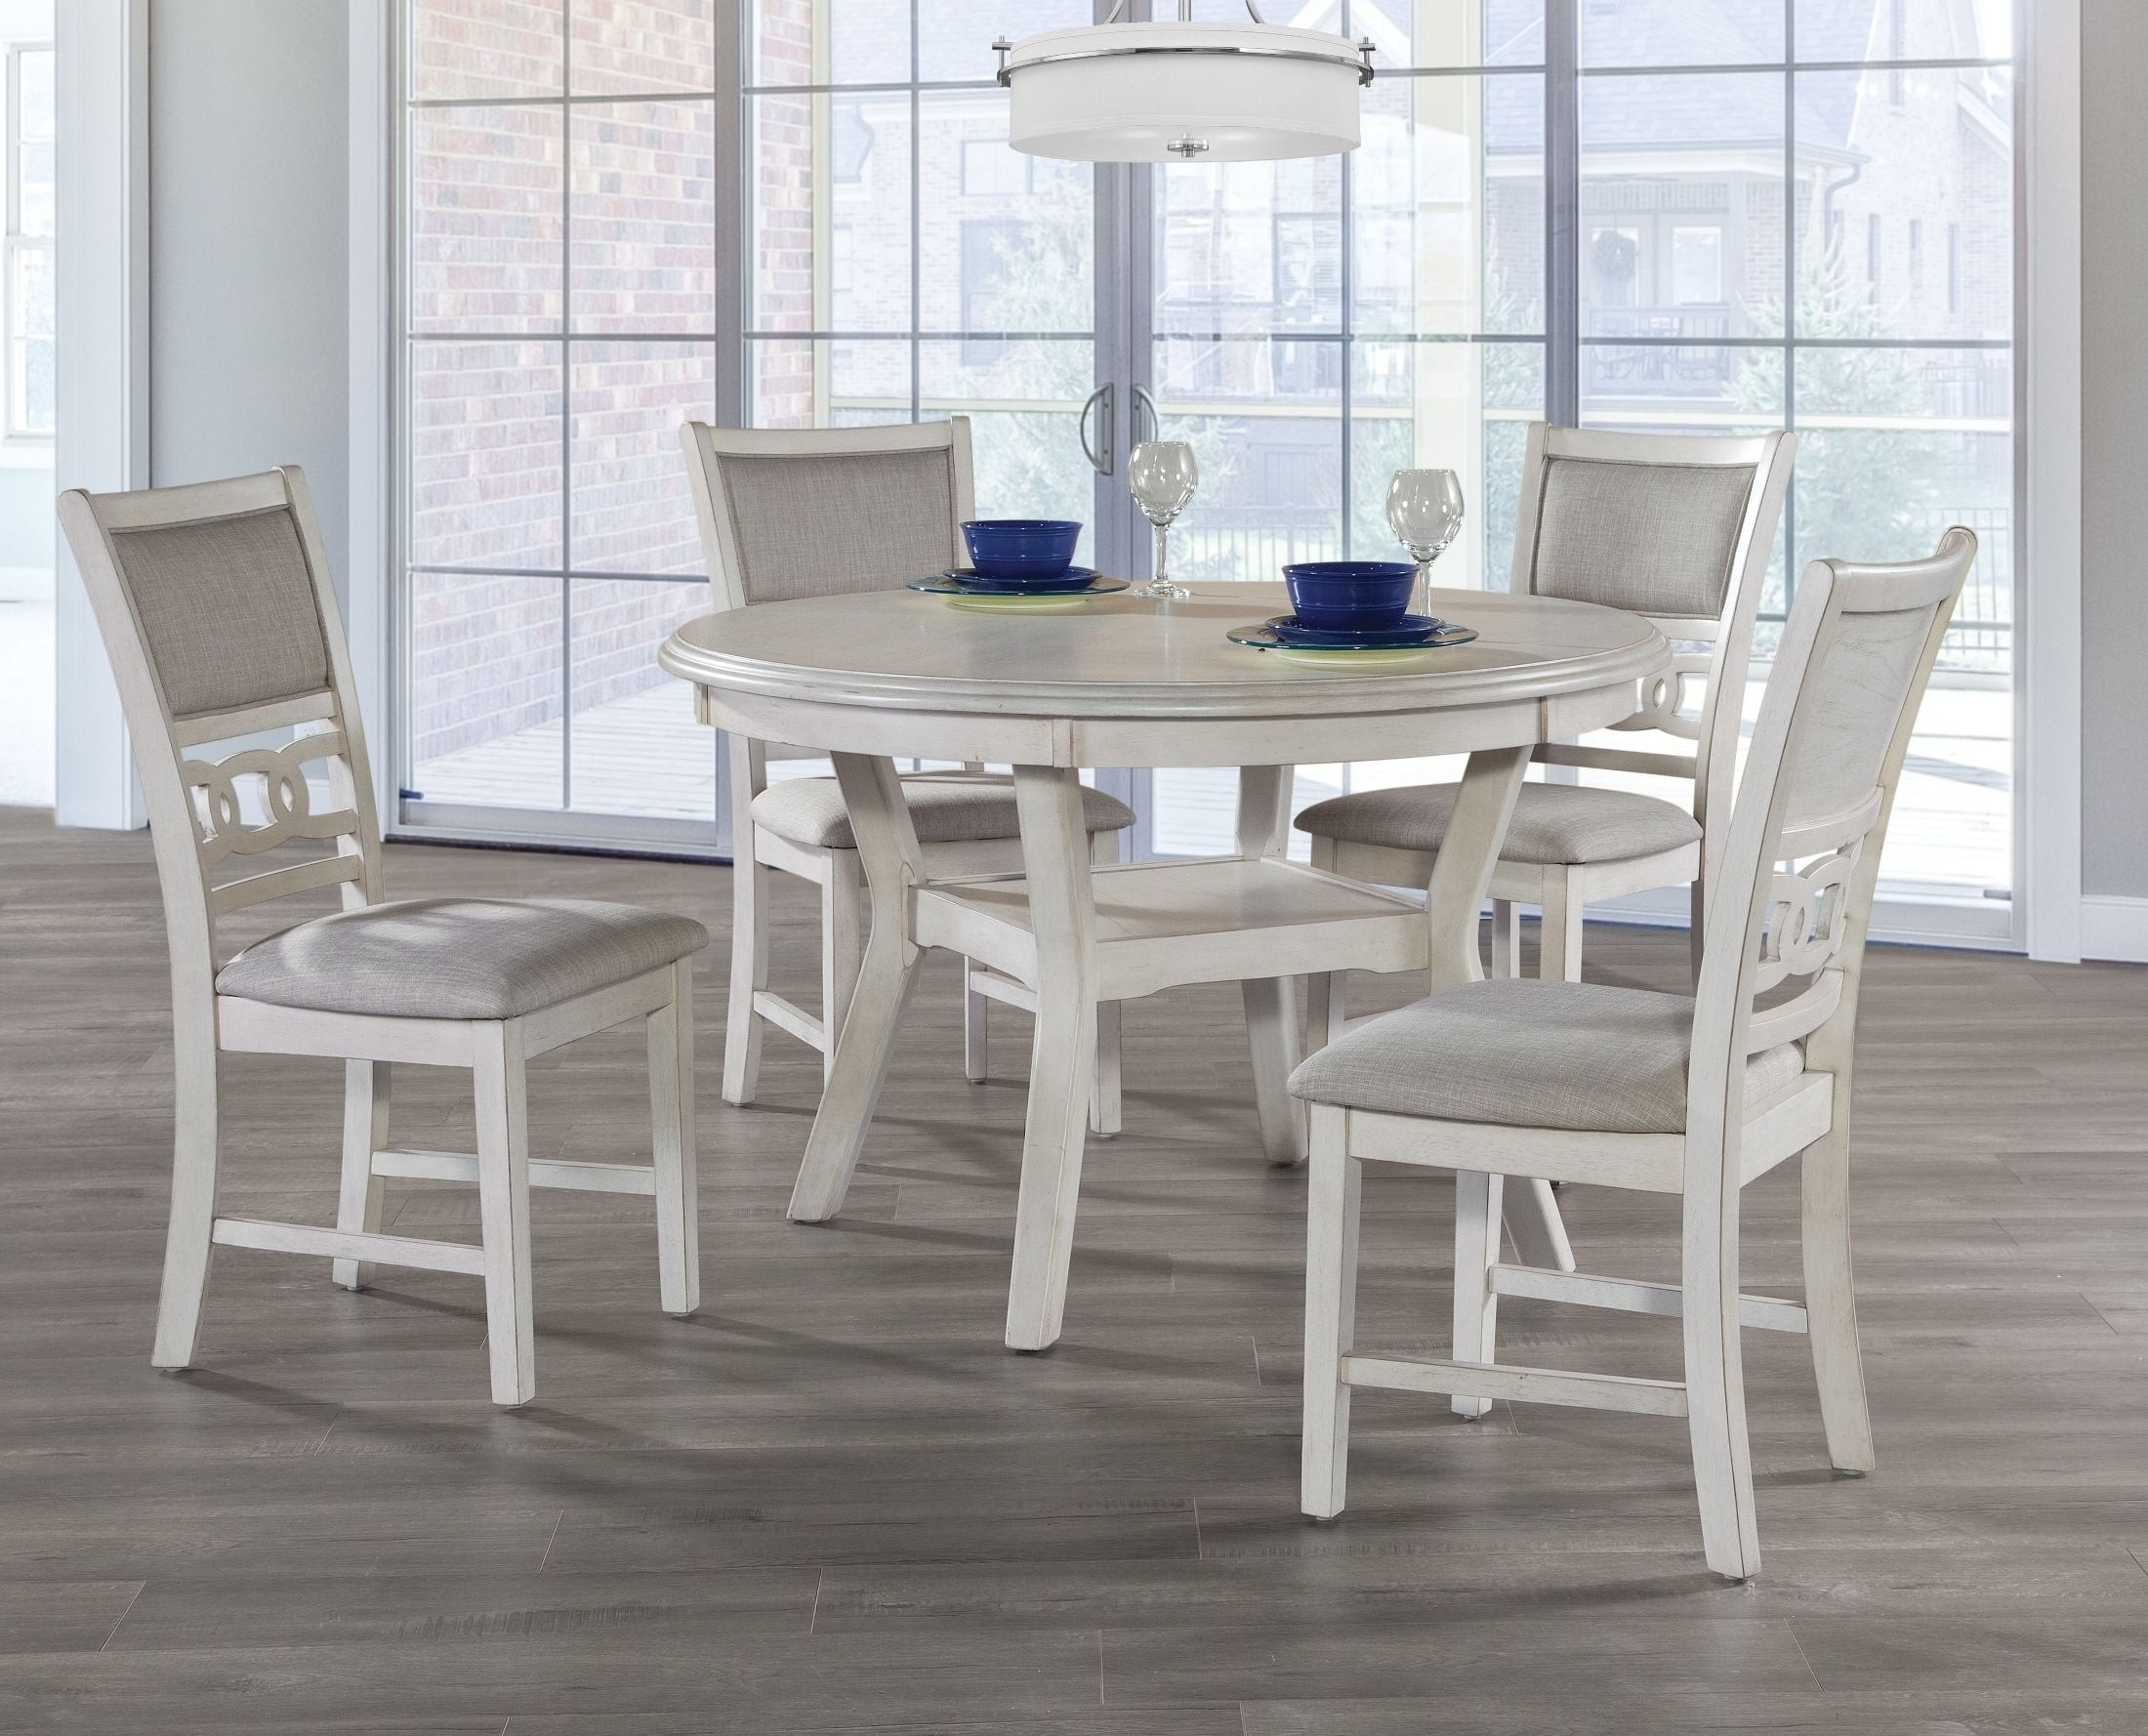 Most Recently Released Caden 5 Piece Round Dining Sets Intended For Best Round Dining Room Table With Best Furniture Mentor Oh Furniture (Gallery 10 of 25)